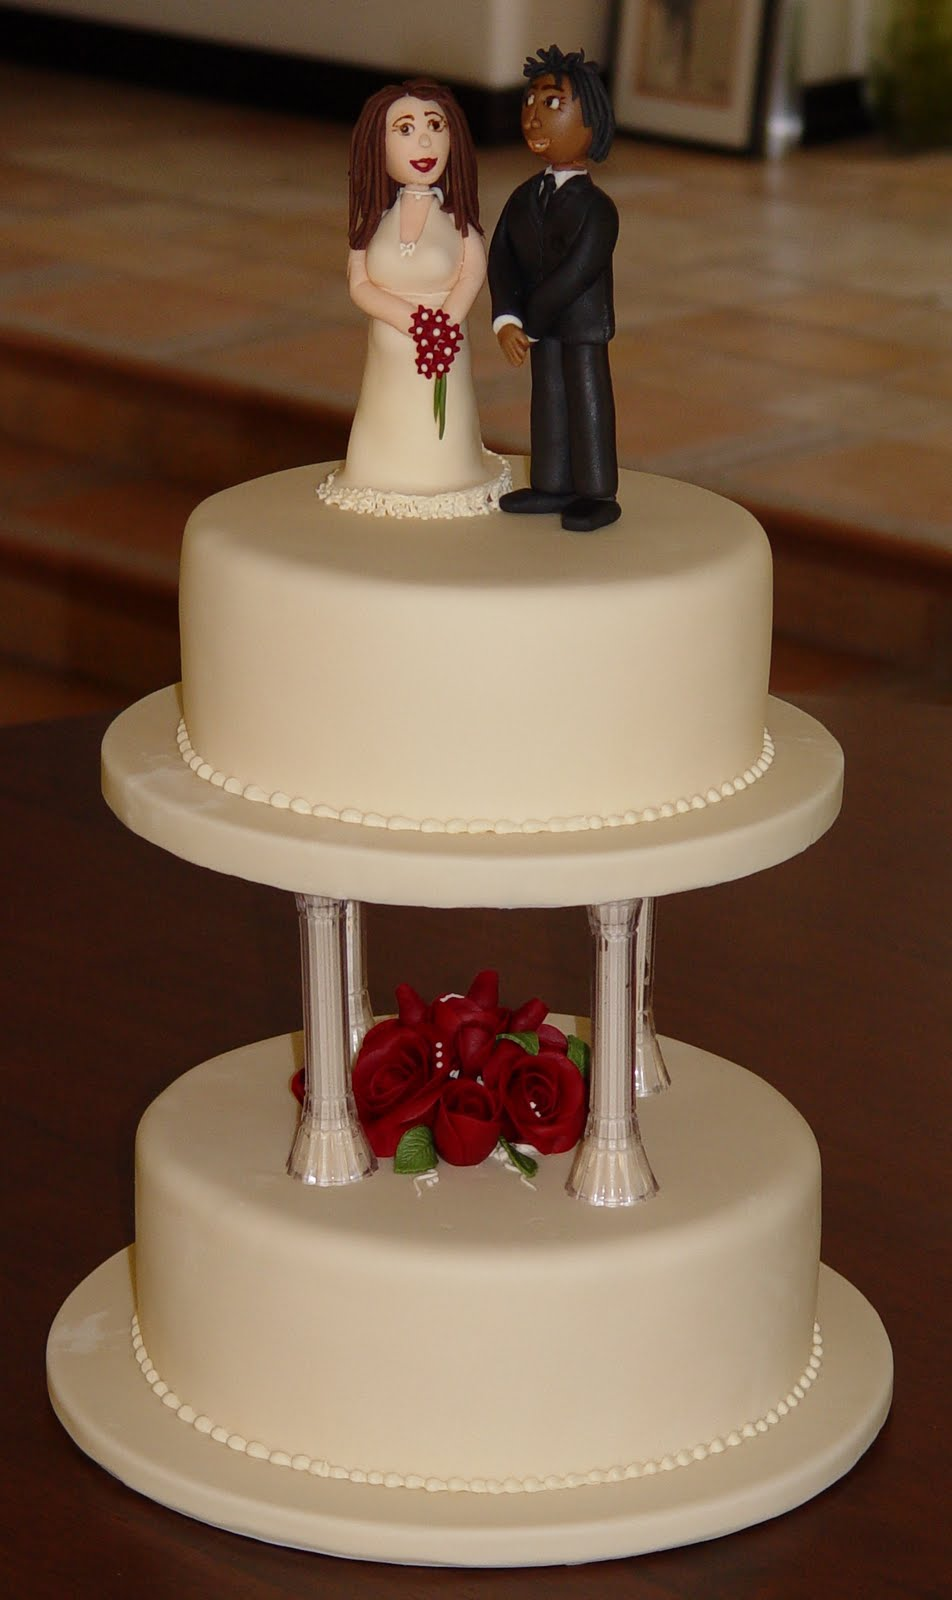 let them eat cake cream two tire wedding cake with figures. Black Bedroom Furniture Sets. Home Design Ideas